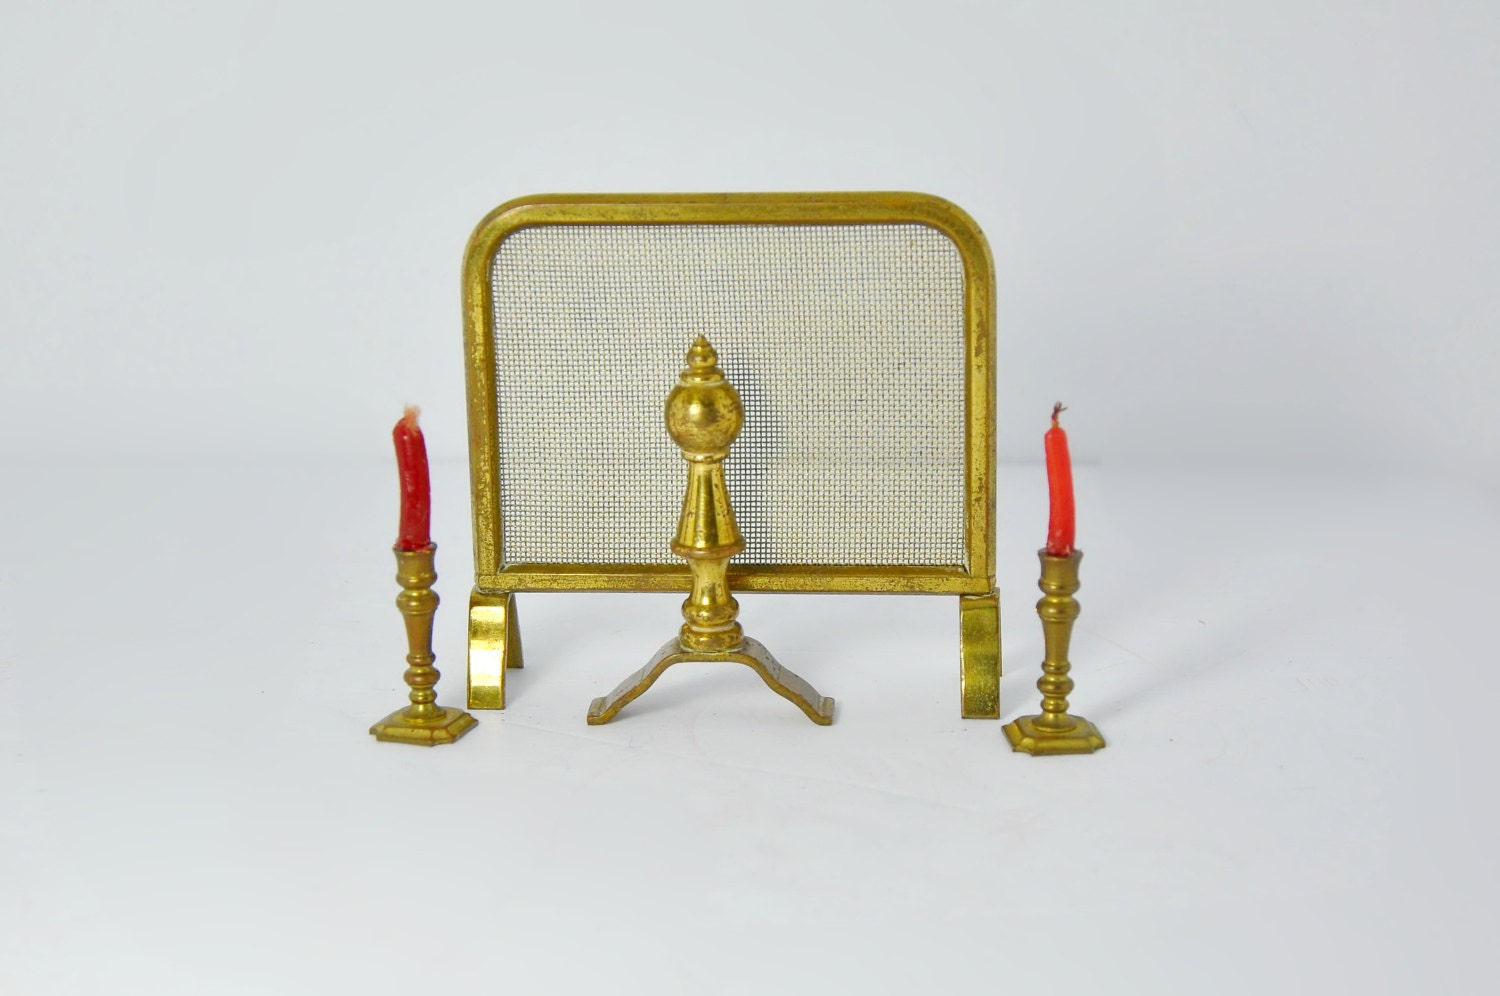 Vintage Dollhouse Furniture Brass Fireplace Miniatures Fireplace Screen Iron Candle Holders